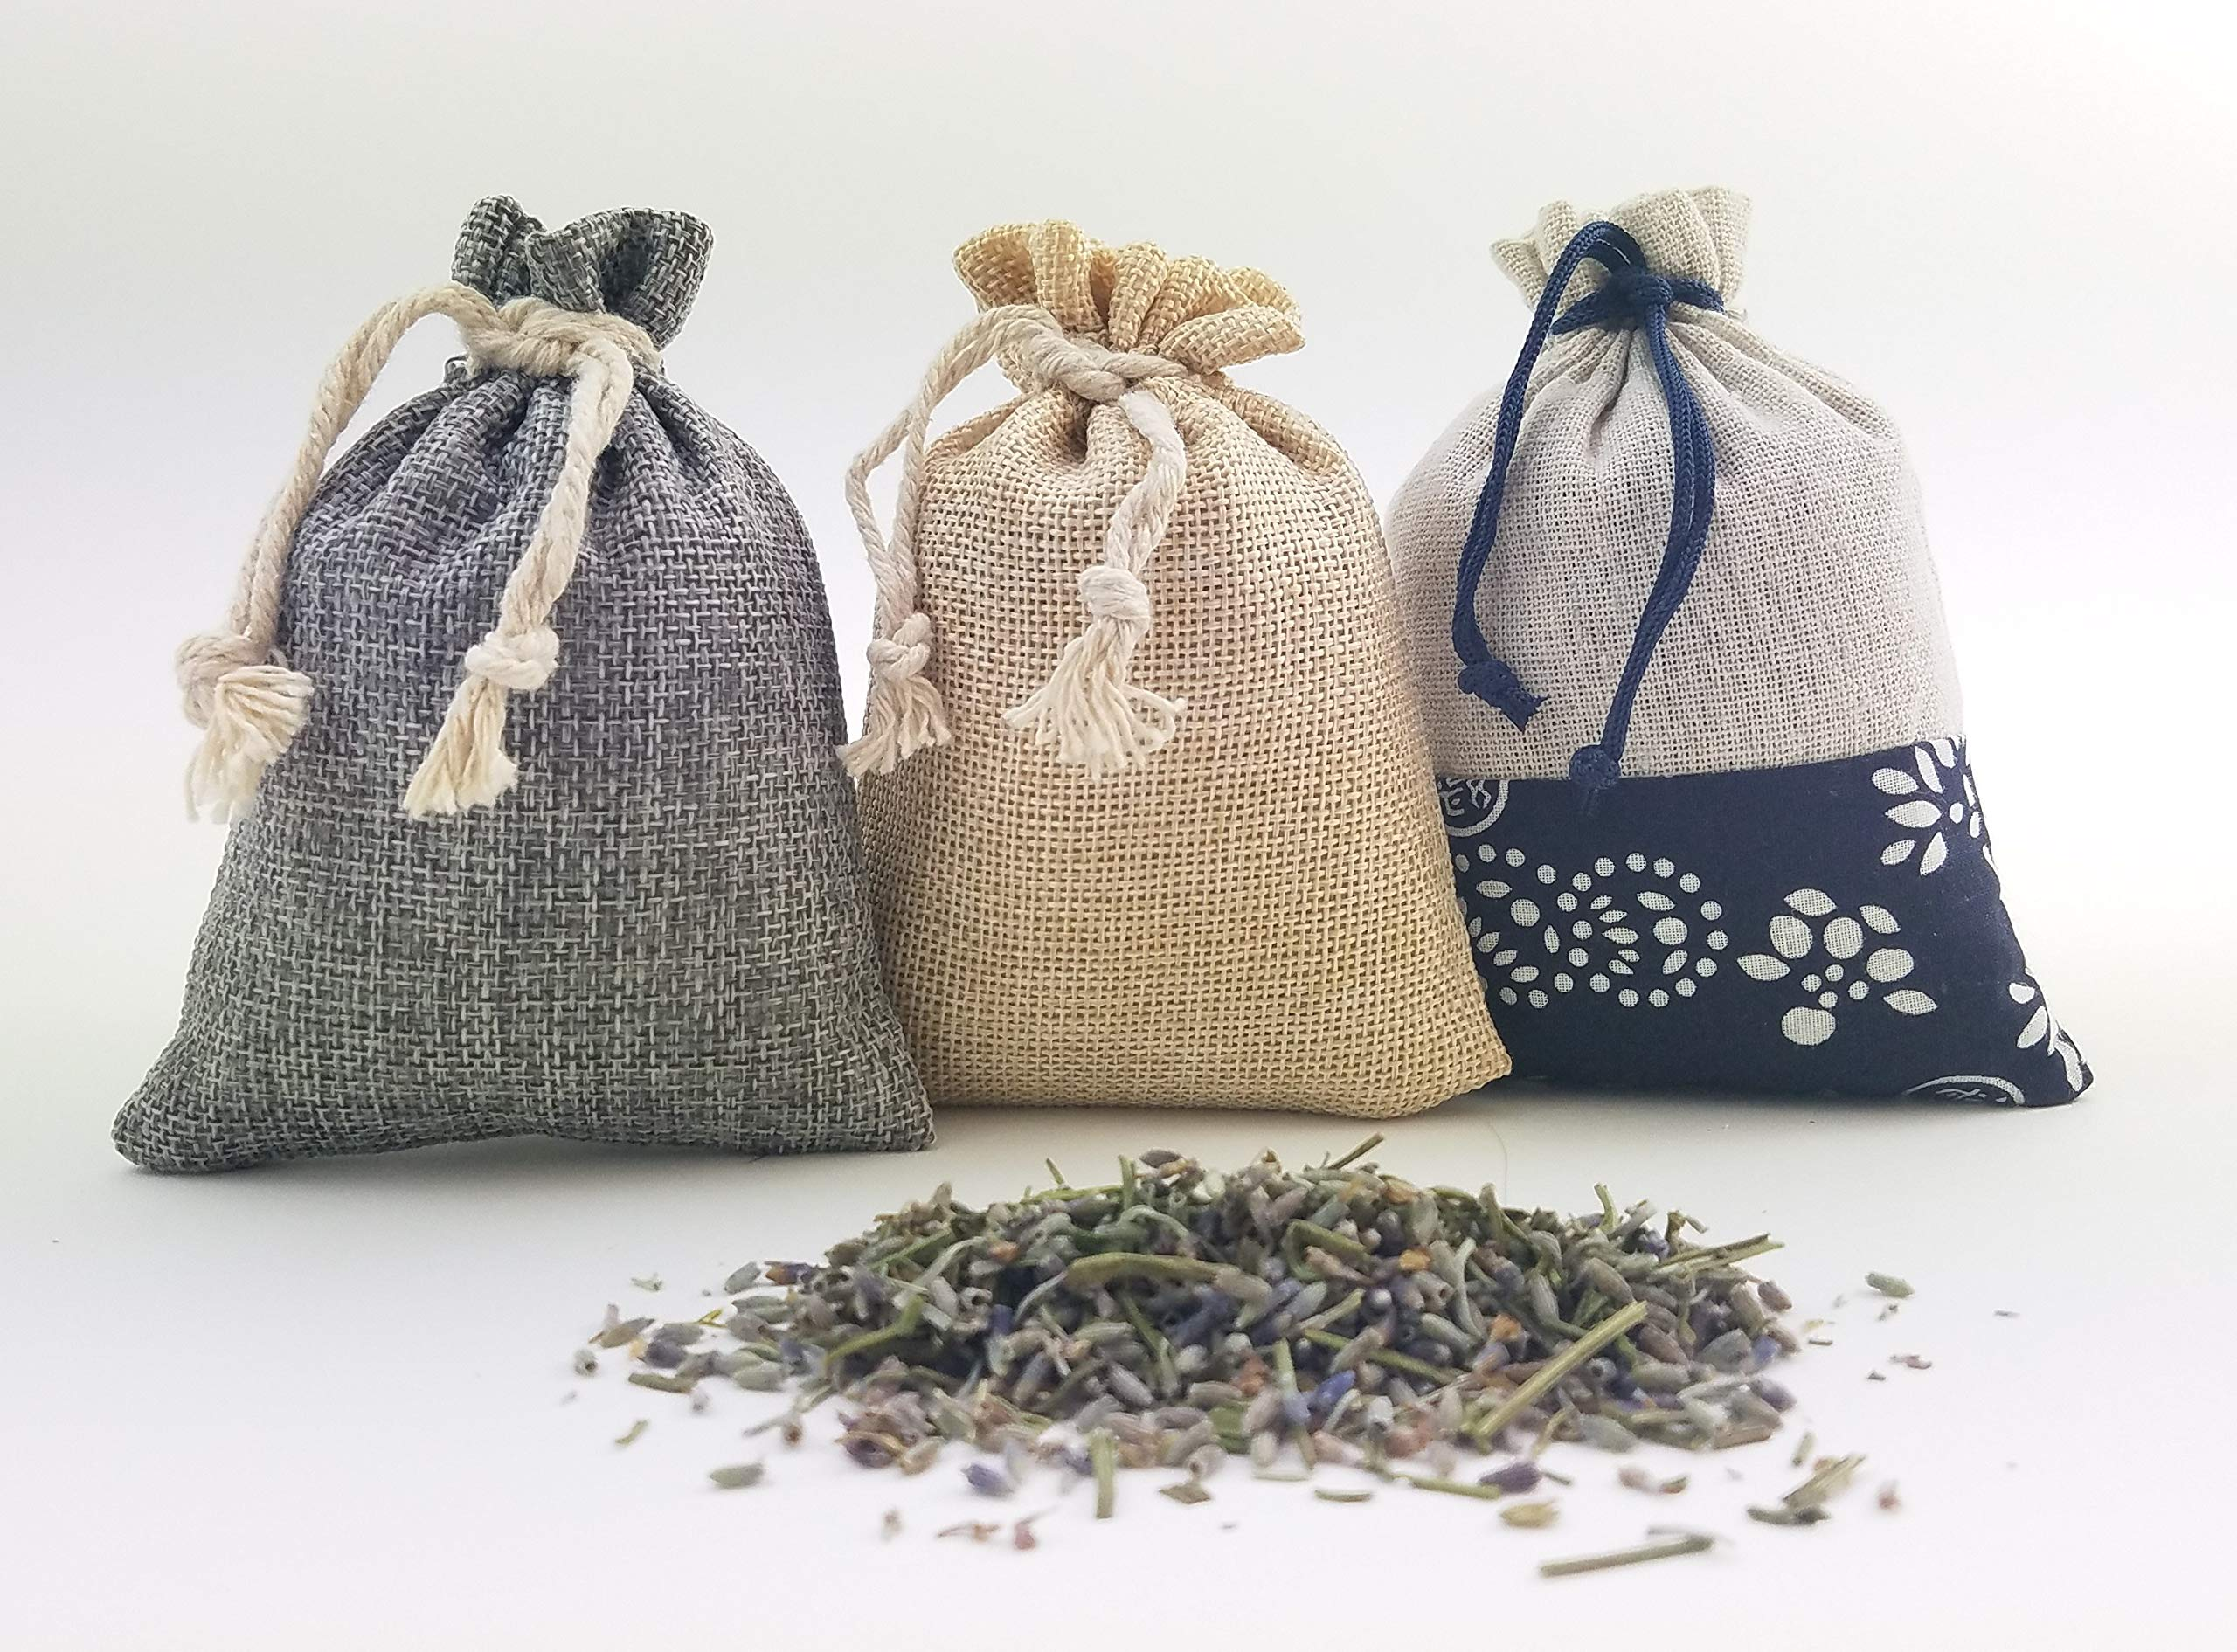 Lavender Scent Sachets, 32 Grams of Fresh, Naturally Dried, Fragrant Lavendula in Burlap Bags (3.7''x5.3''), (Set of 3 Colors: tan, Grey & Ethnic Print) Harvested in Northern California by Generic (Image #1)